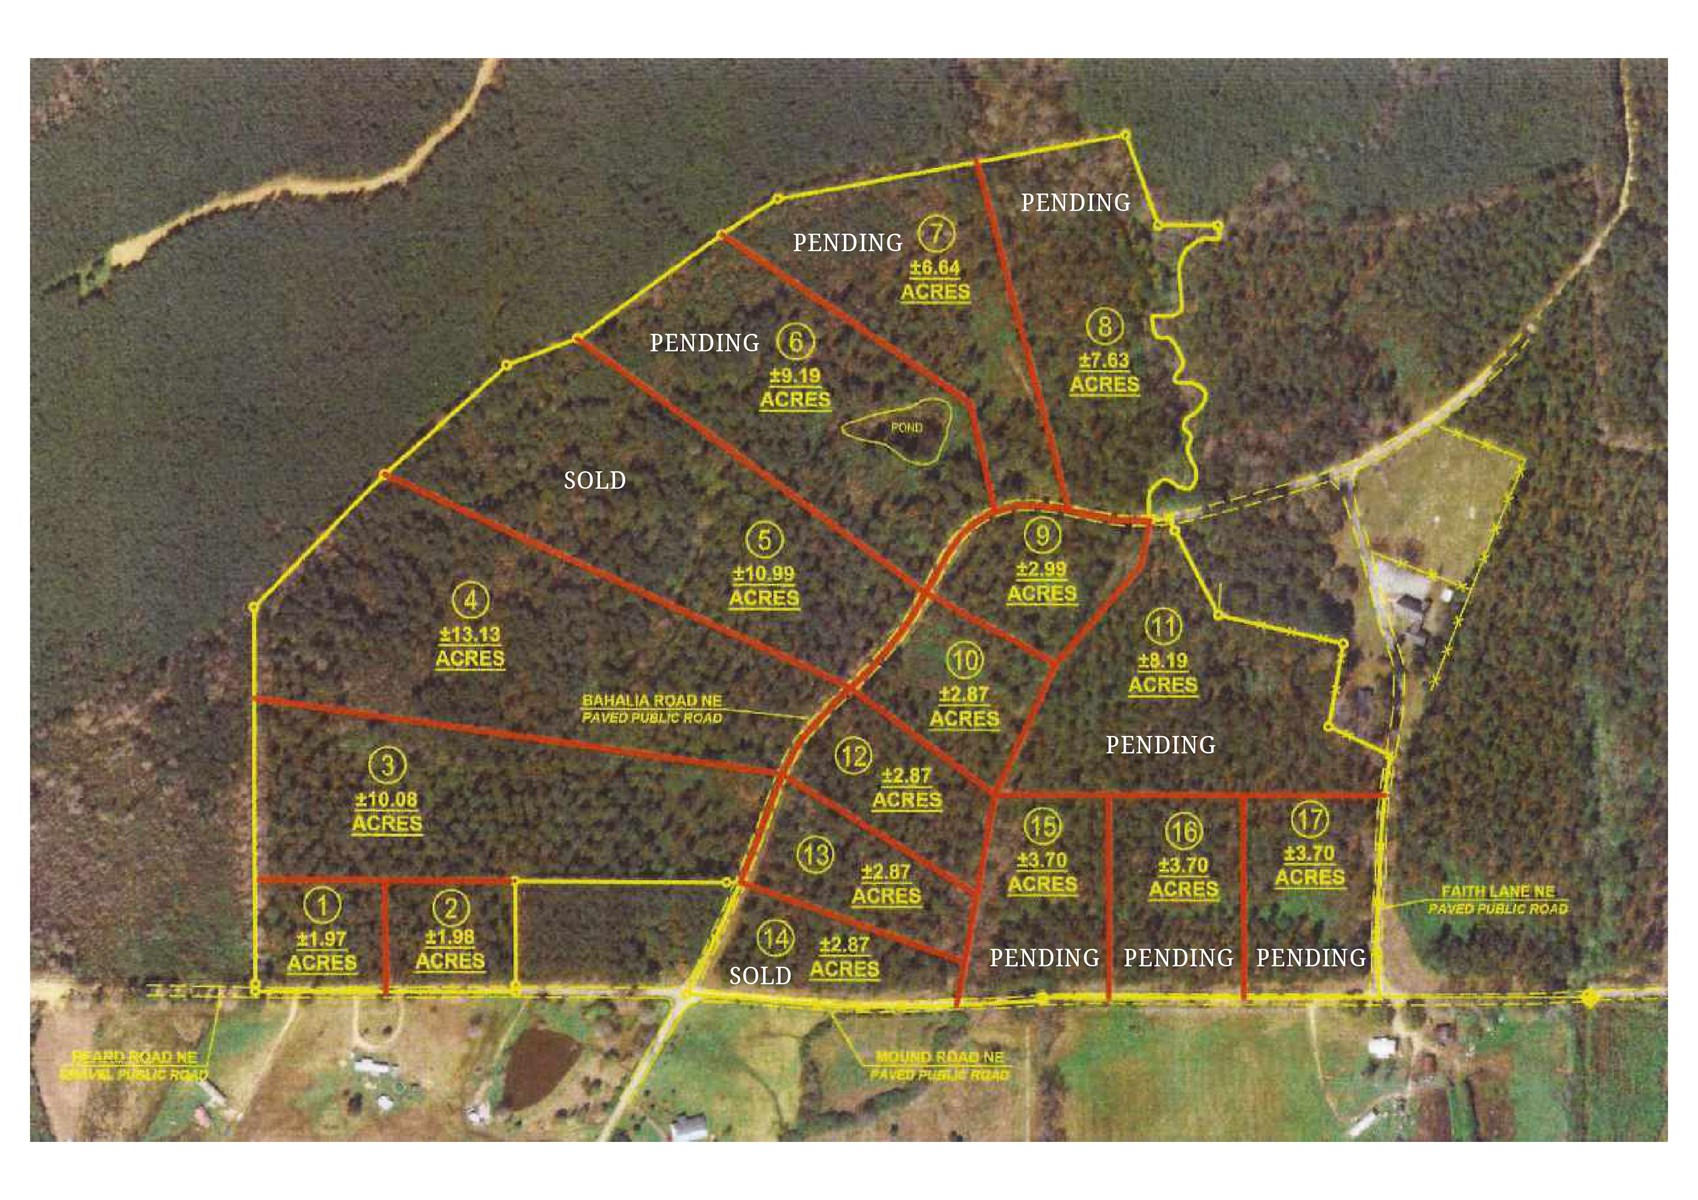 Land for sale in Rural Lincoln County MS